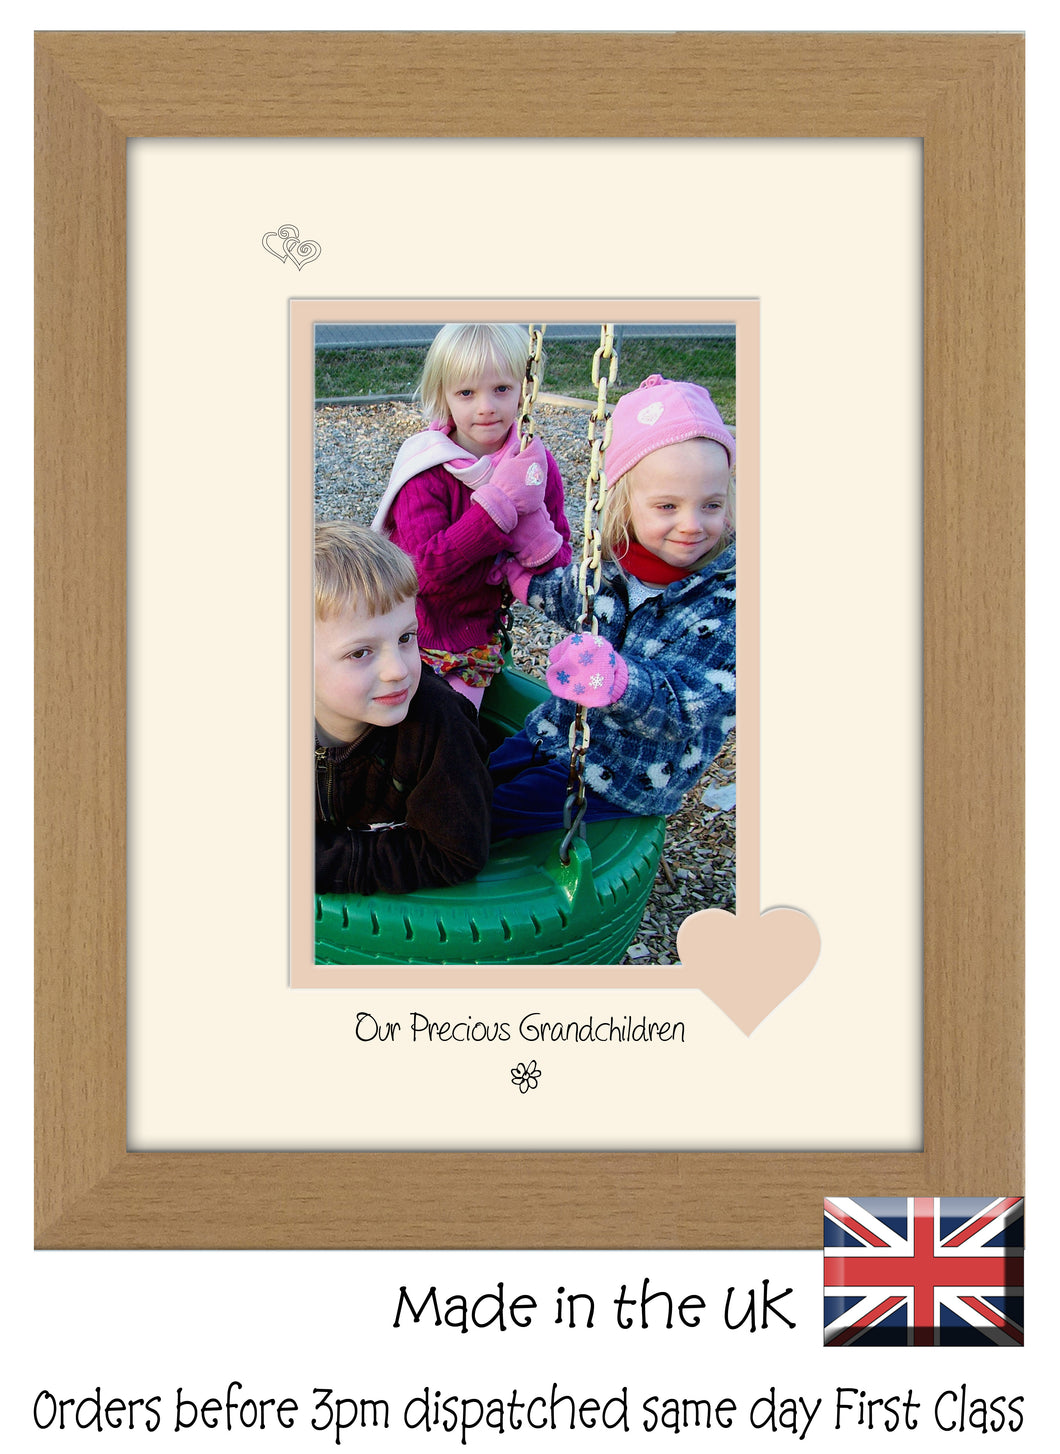 Grandchildren Photo Frame - Our precious Grandchildren Portrait photo frame 6